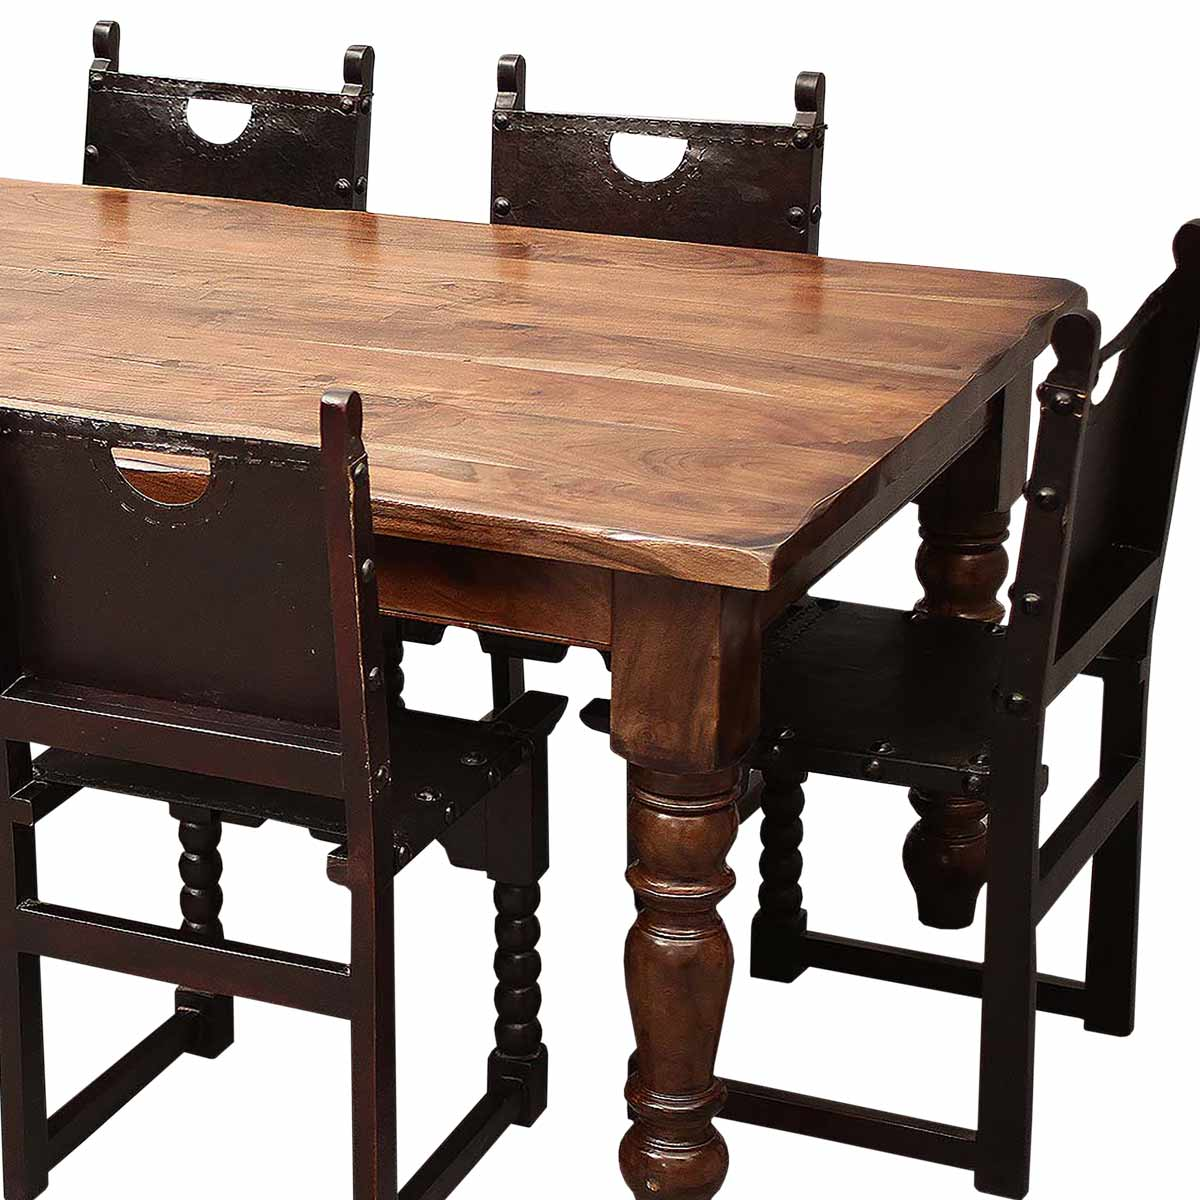 Classic Rustic Acacia amp Leather Dining Table Chair Set : 43872 from www.sierralivingconcepts.com size 1200 x 1200 jpeg 113kB